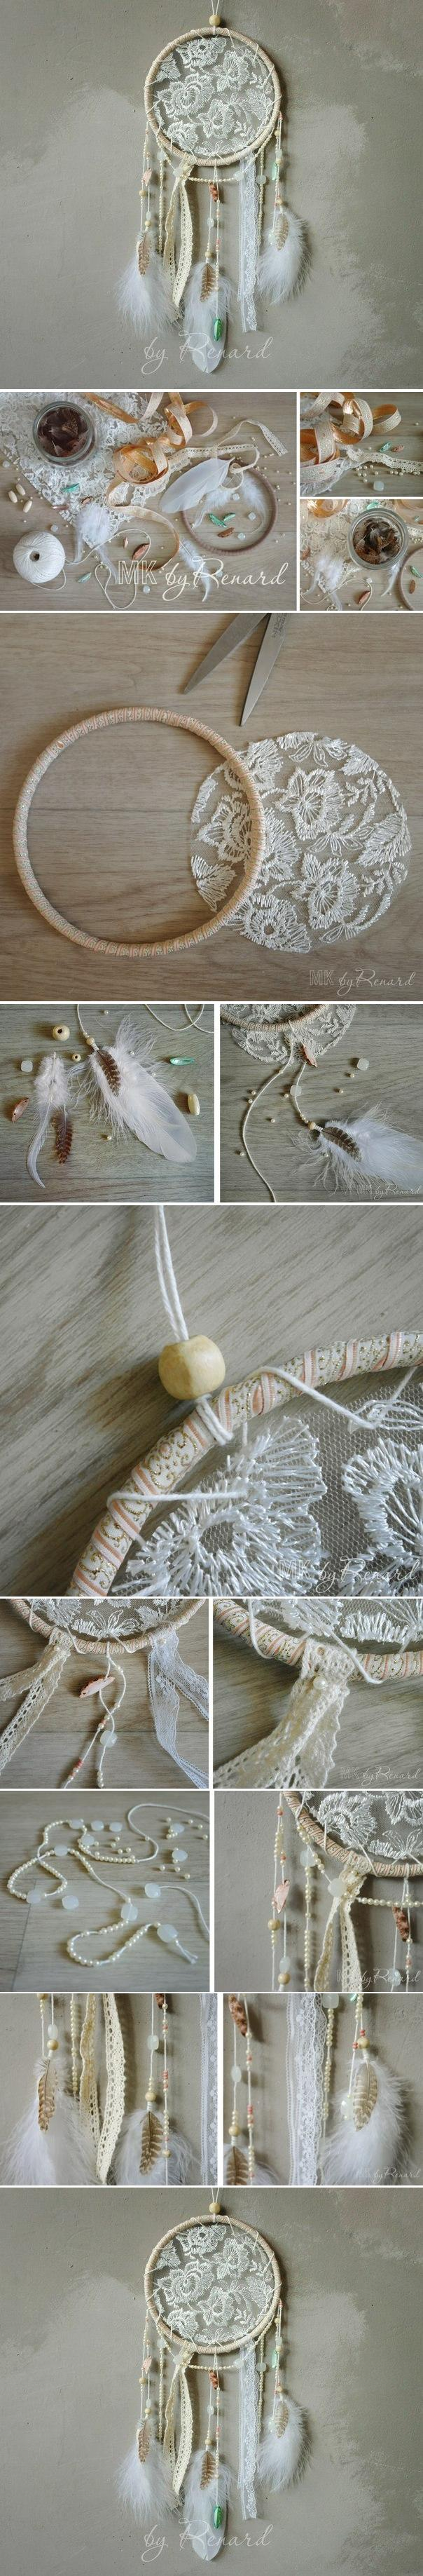 Diy simple dreamcatcher diy projects usefuldiycom for Easy homemade dream catchers